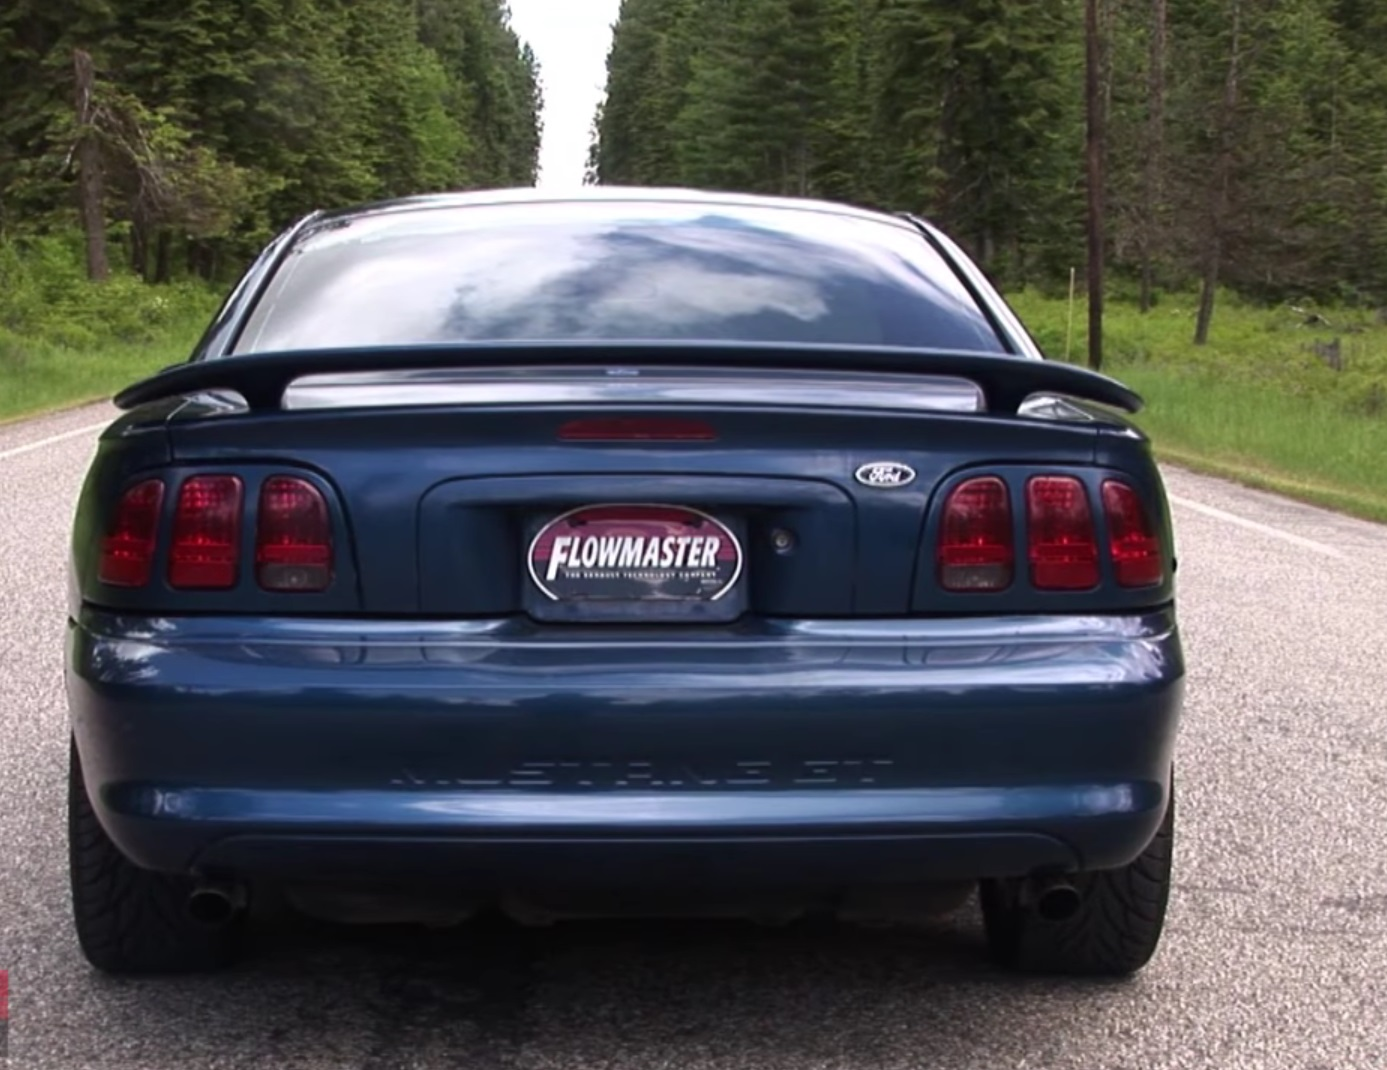 Video: 1998 Ford Mustang GT With American Thunder Cat-back Exhaust System